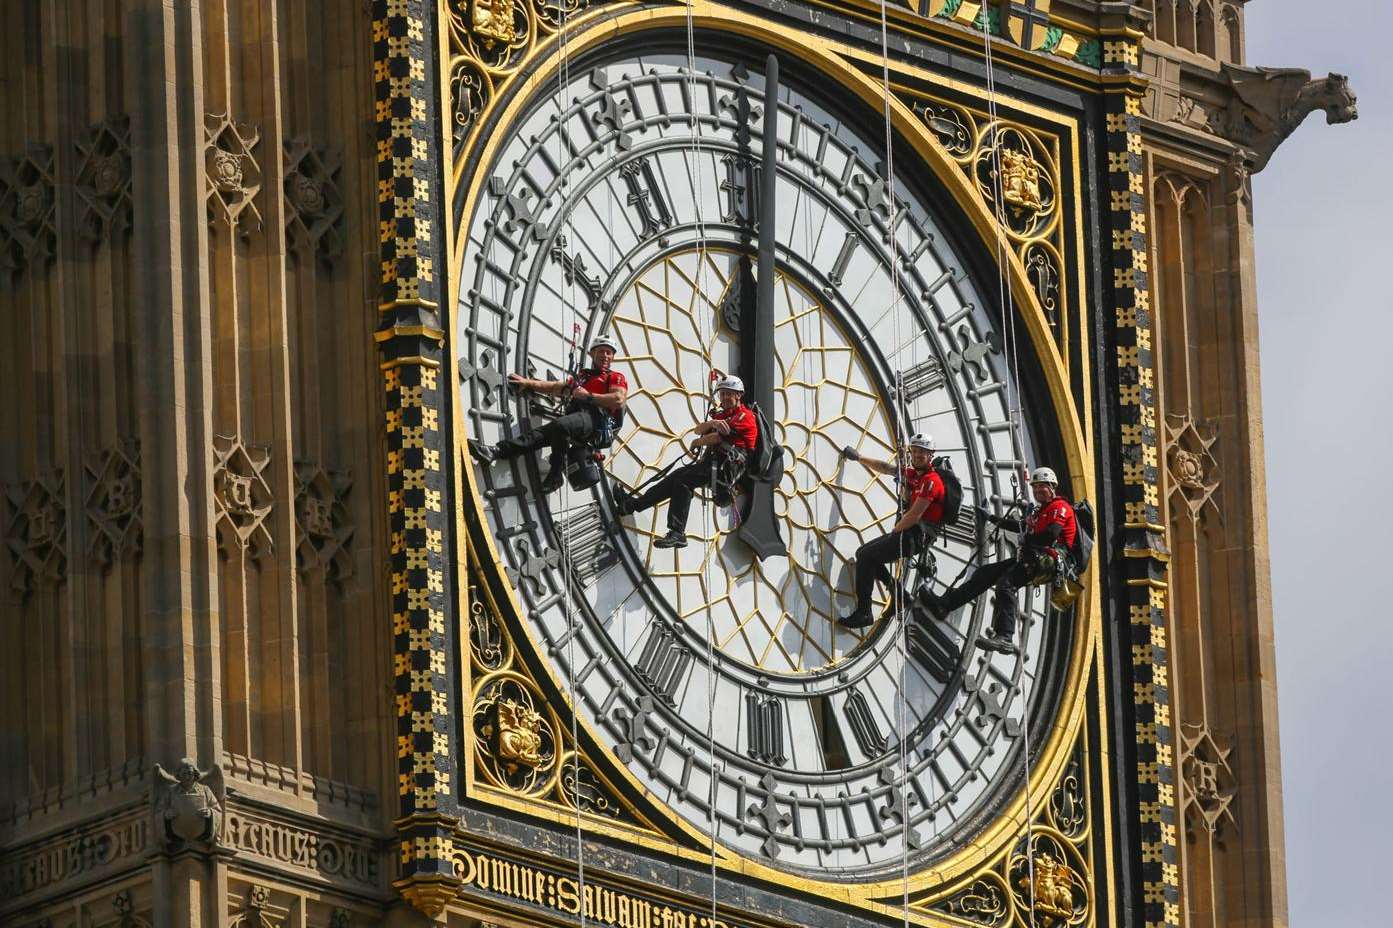 The Big Ben tower is at the heart of UK time-keeping - here it gets a spruce-up